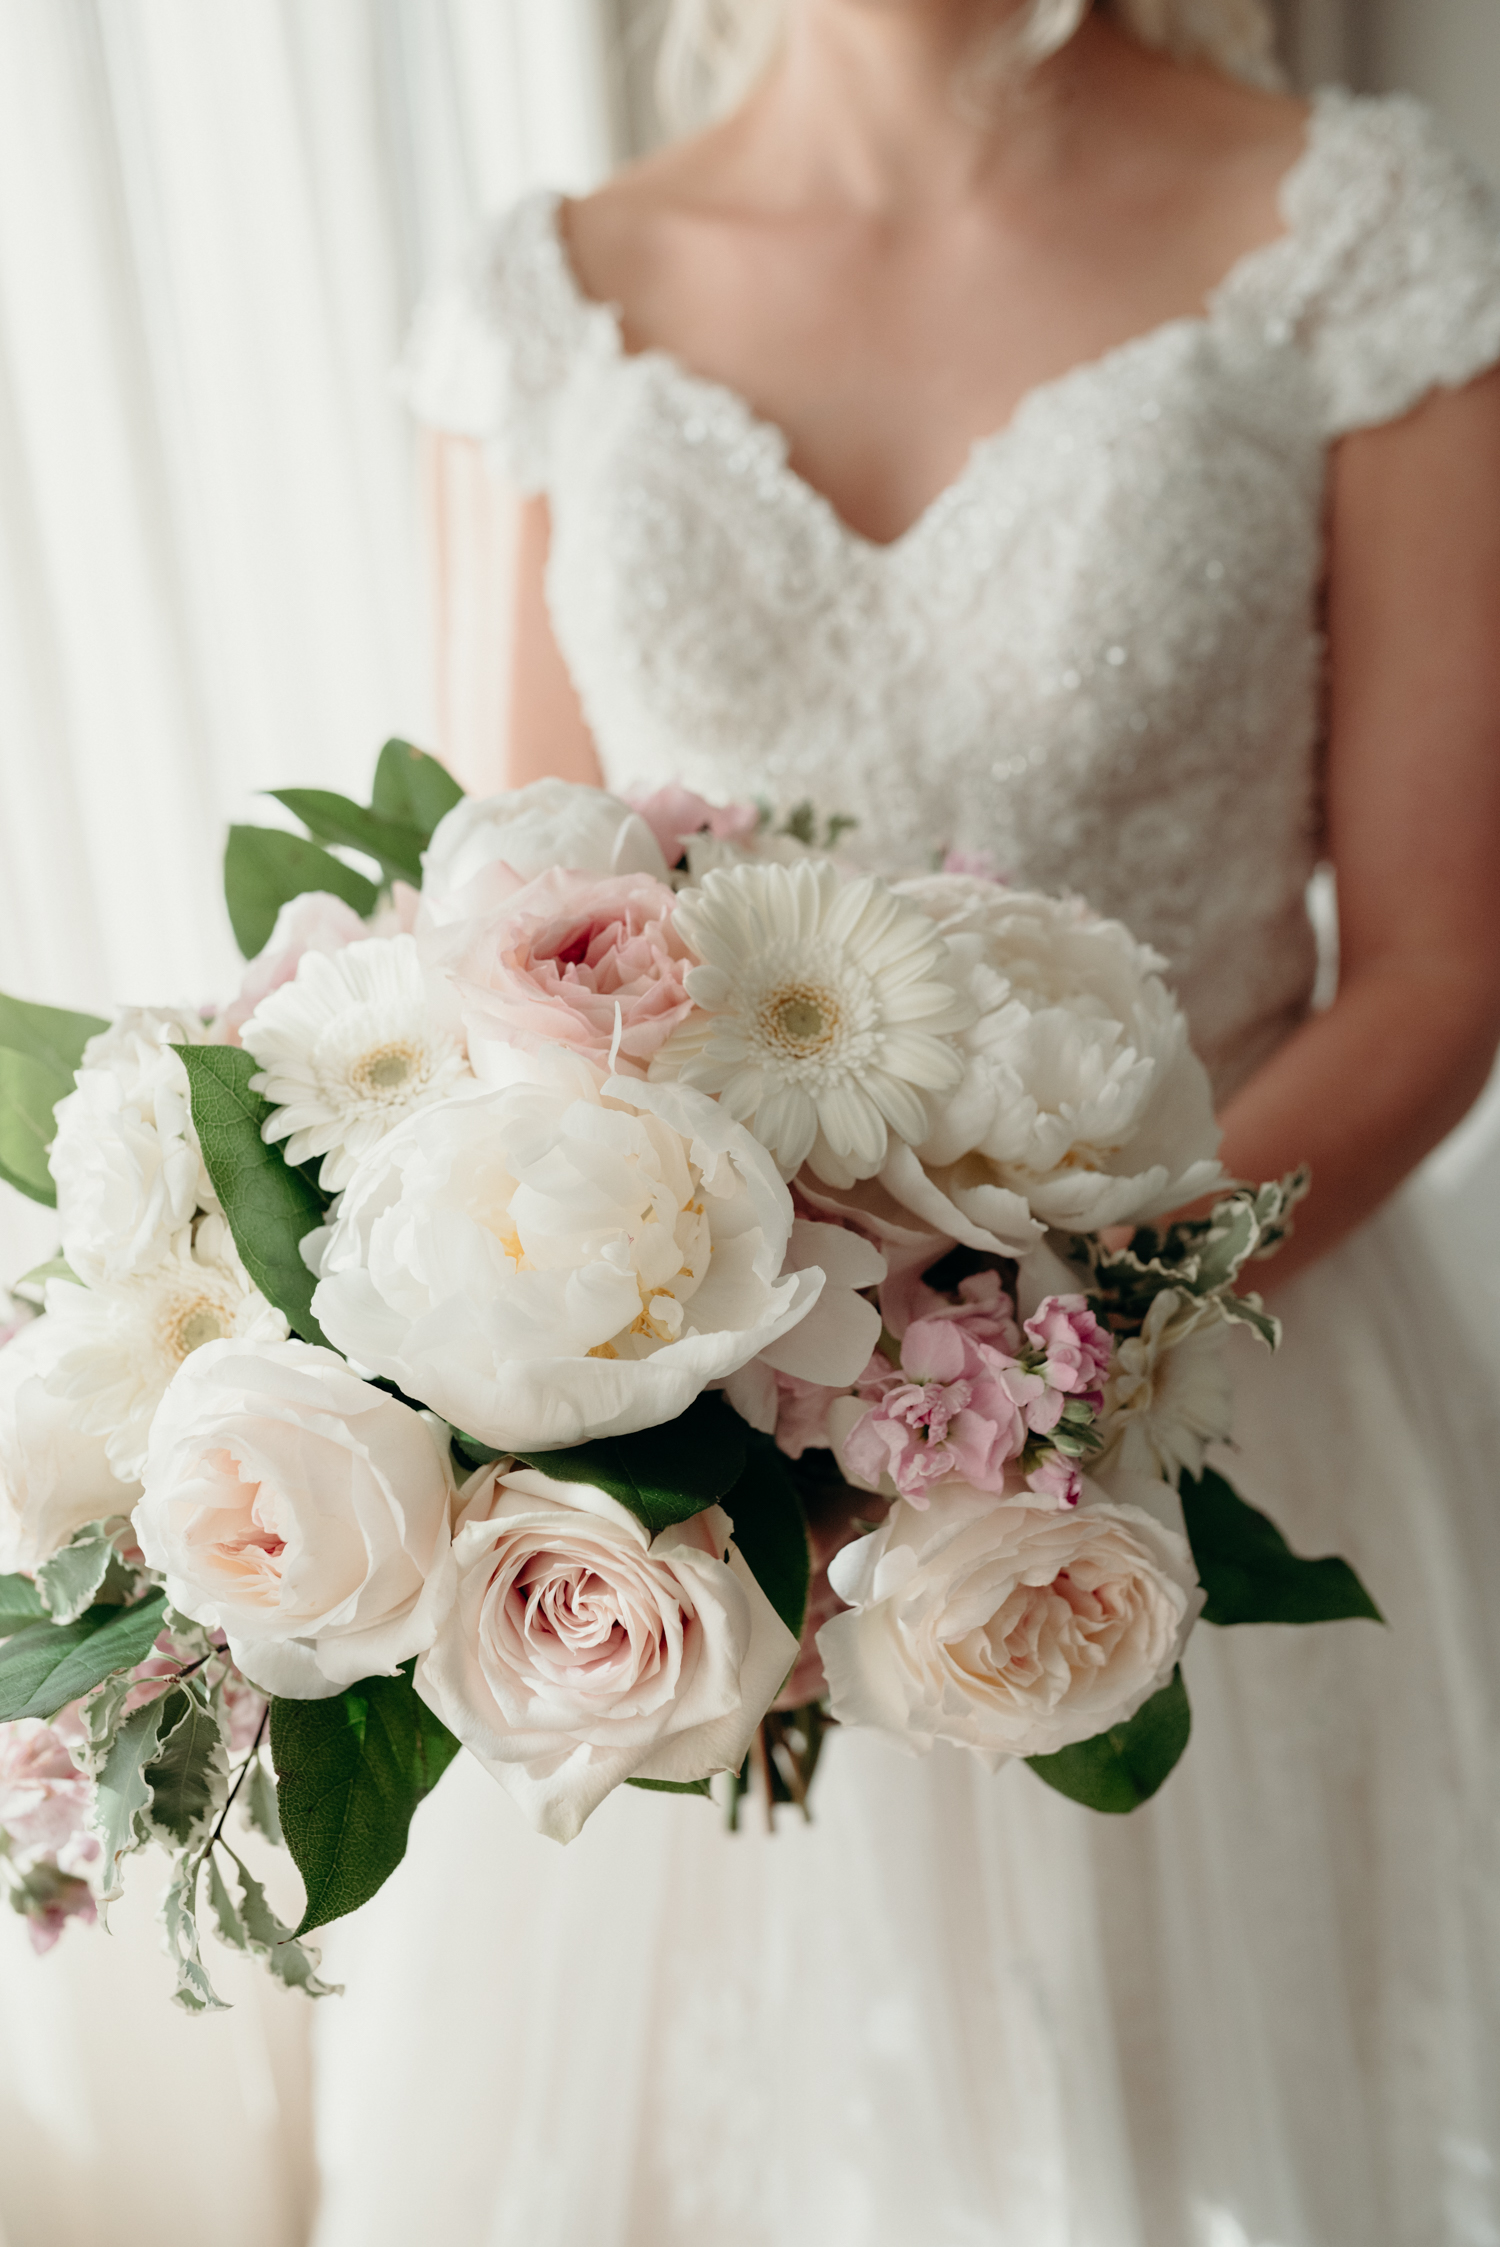 A bride holds a bouquet of of pink and white flowers on her wedding day at Lansdowne Resort.